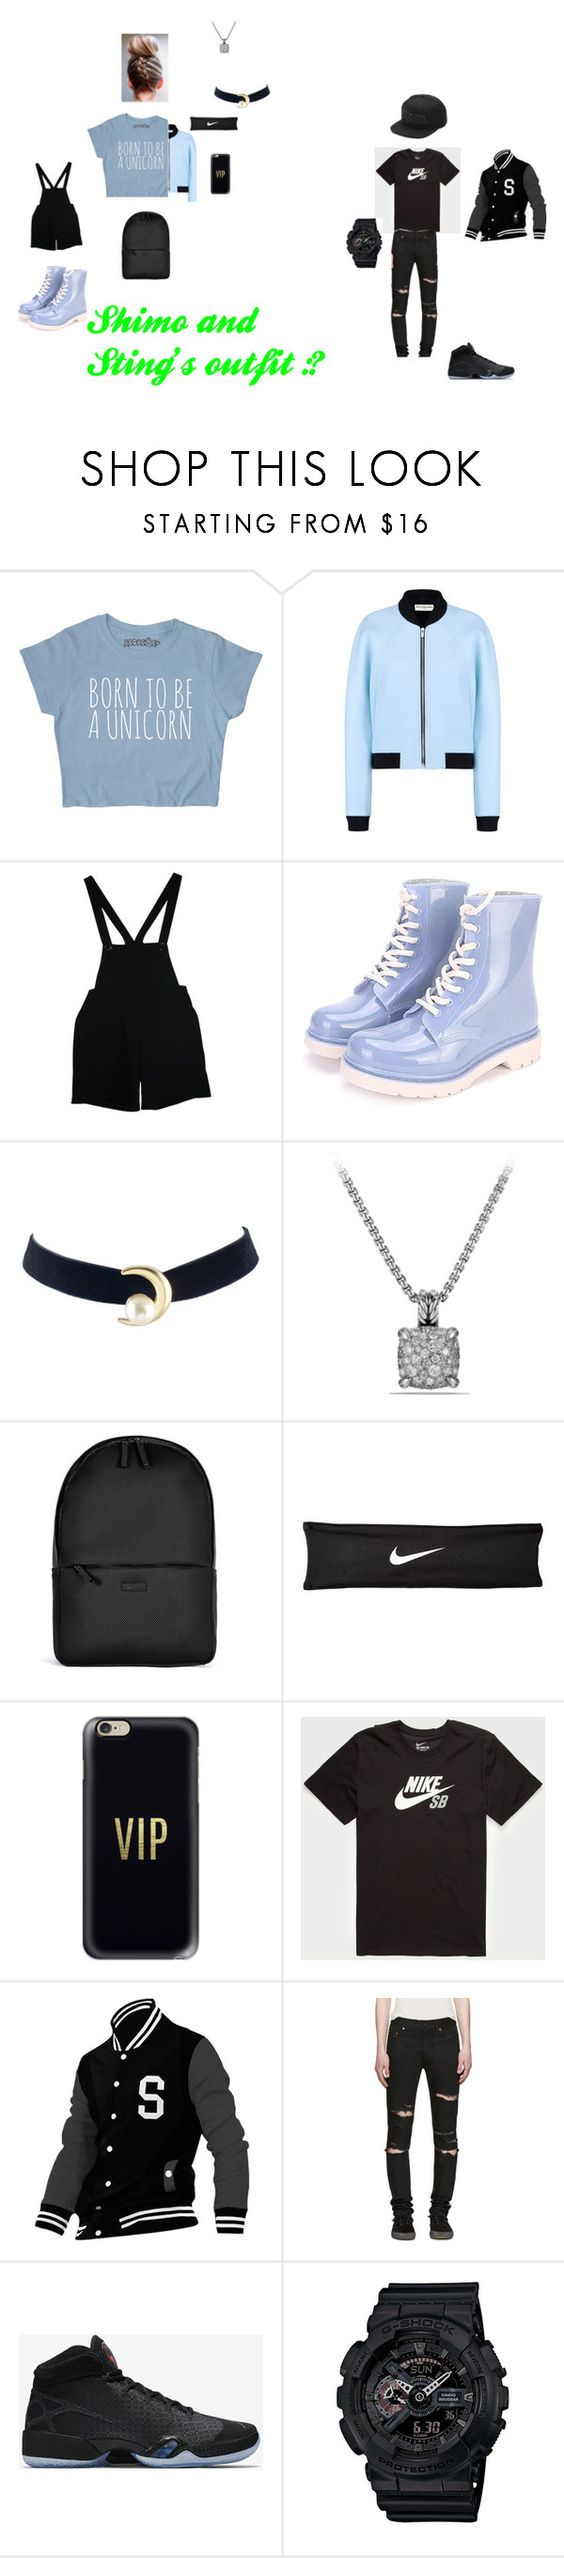 """Sting"" by shiyanemcnab on Polyvore featuring Balenciaga, American Apparel, David Yurman, Rains, NIKE, Casetify, Allegra K, Yves Saint Laurent, G-Shock and Vans"